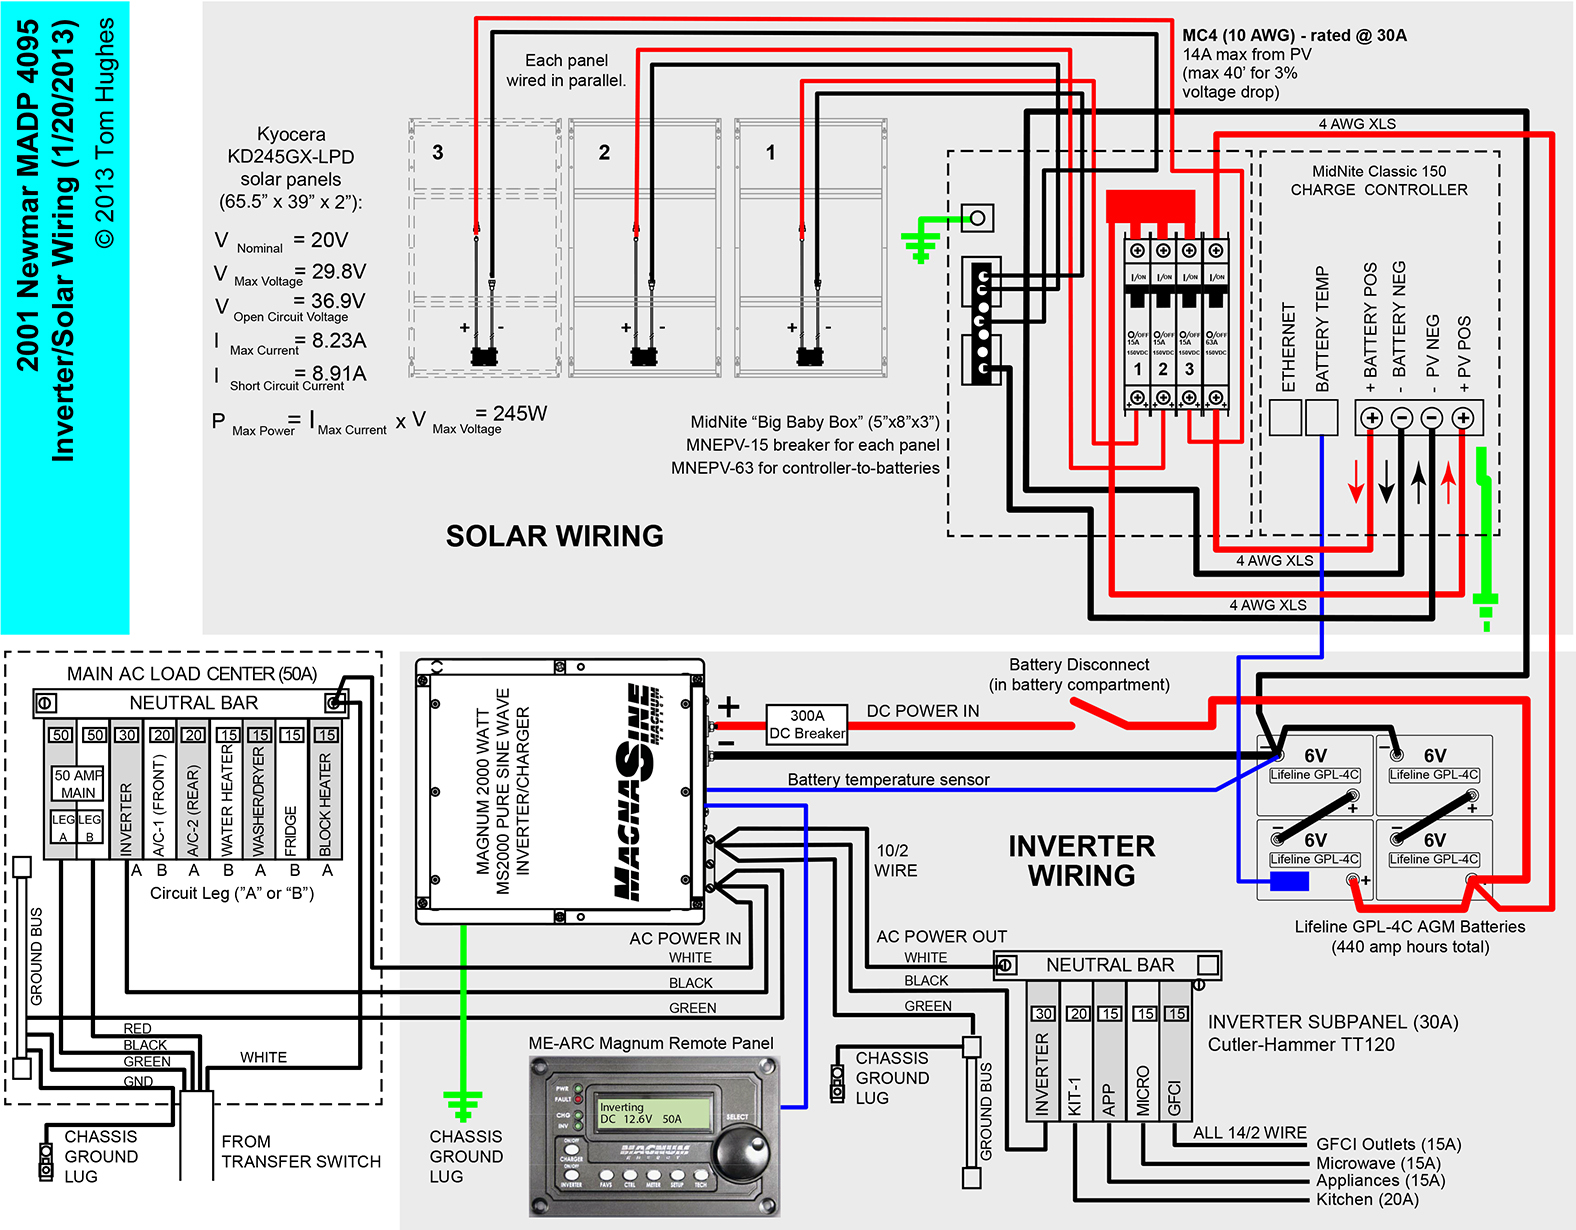 ms2000_newmar_inverter_wiring_01_20_2013 rv inverter diagram rv inverter transfer switch \u2022 wiring diagrams wiring diagram for inverter at home at edmiracle.co